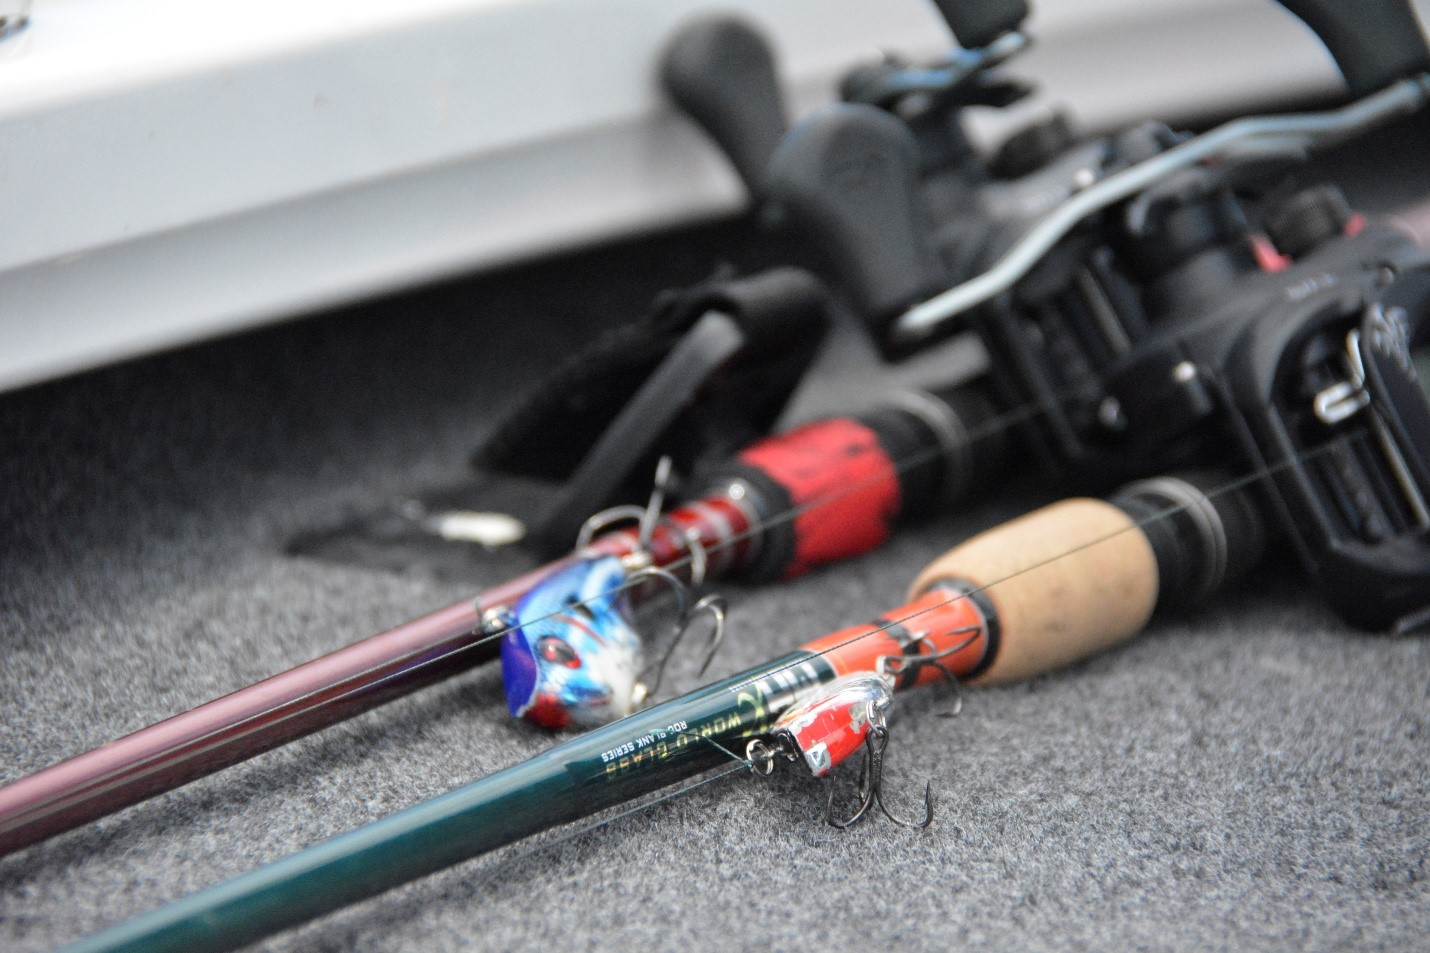 //content.osgnetworks.tv/infisherman/content/photos/Crankbait-Fishing-Rod.jpg